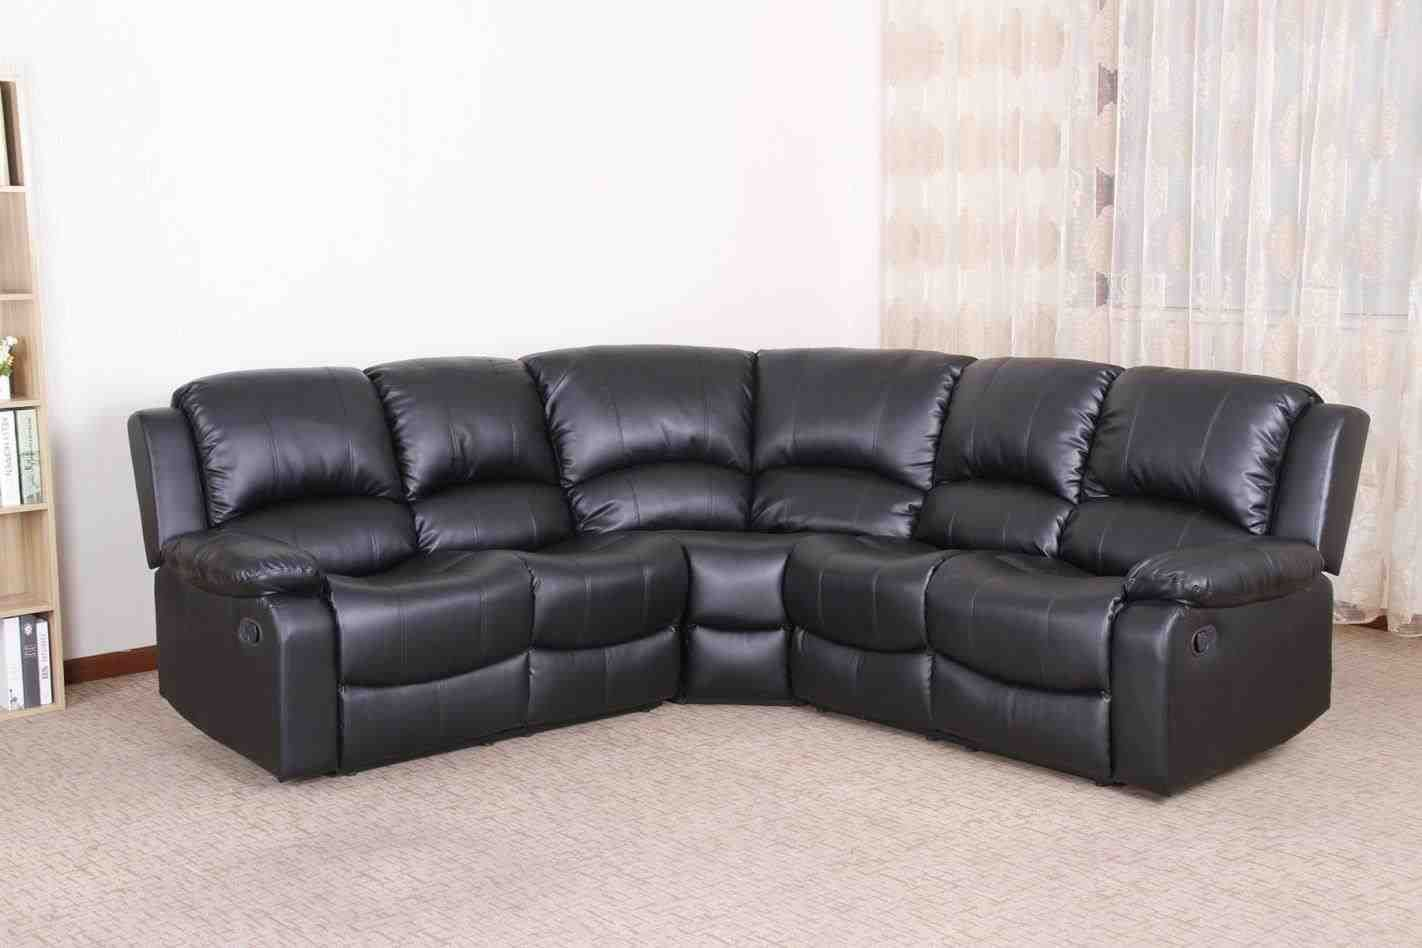 Black Corner Sofa Full Size Of Blue Leather Small Bed